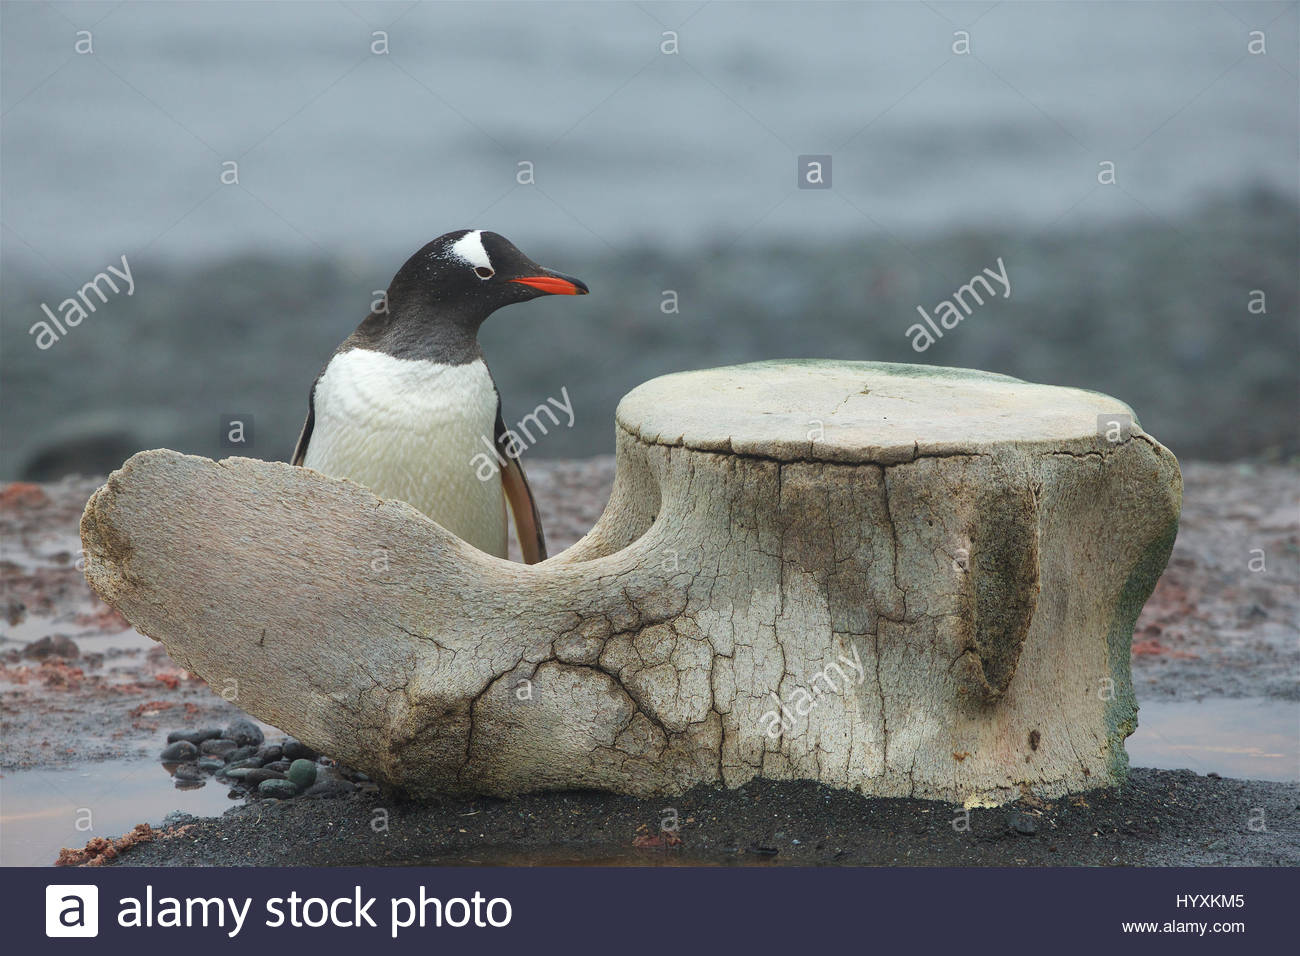 A Gentoo Penguin, Pygoscelis papua, next to vertebrae of large baleen whale. Stock Photo